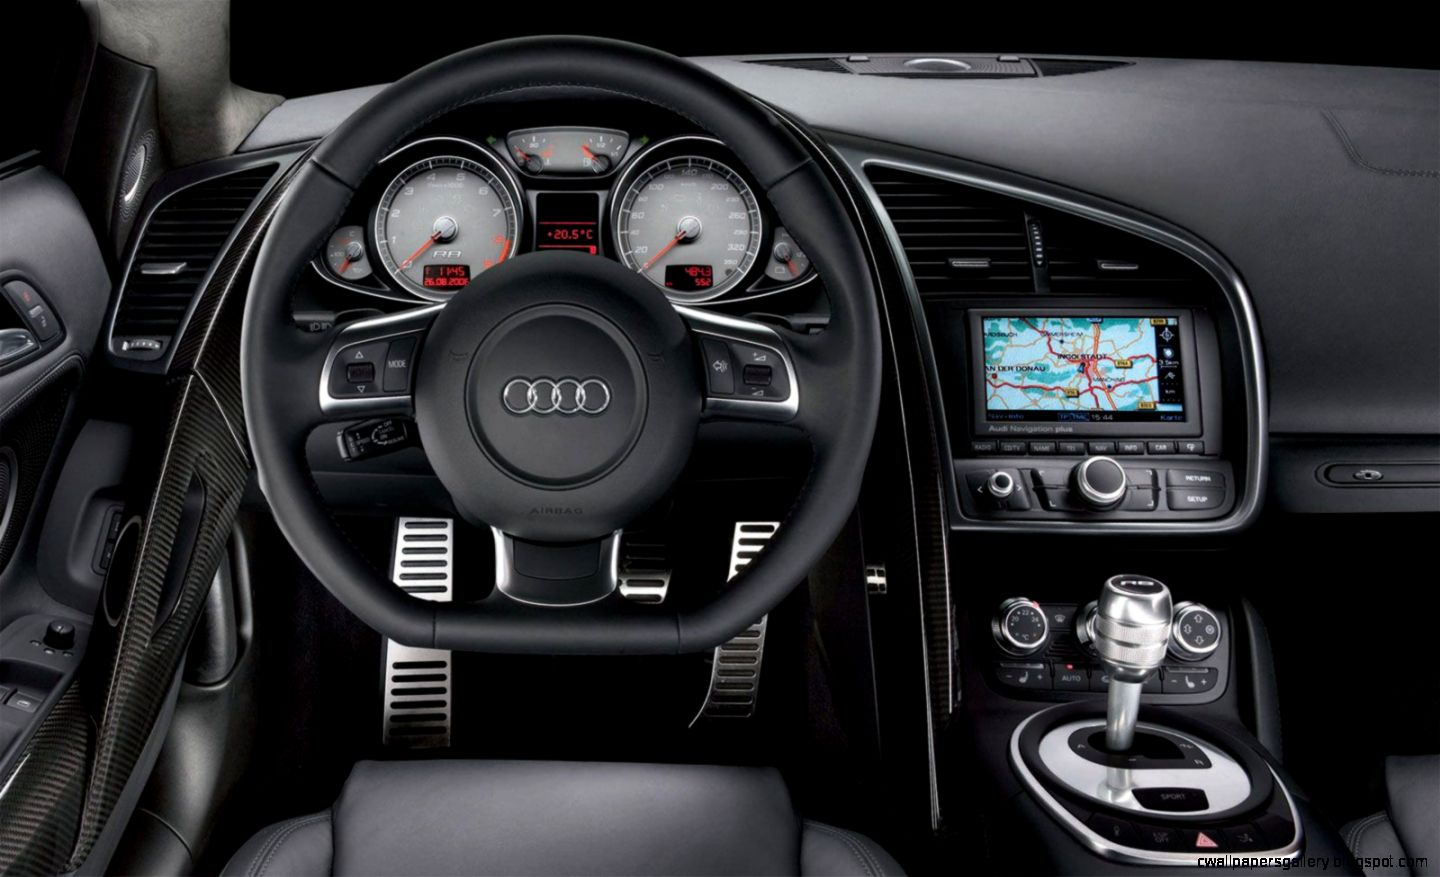 Audi R8 Interior Automatic HF7tLXTR    – Cool Car Wallpaper